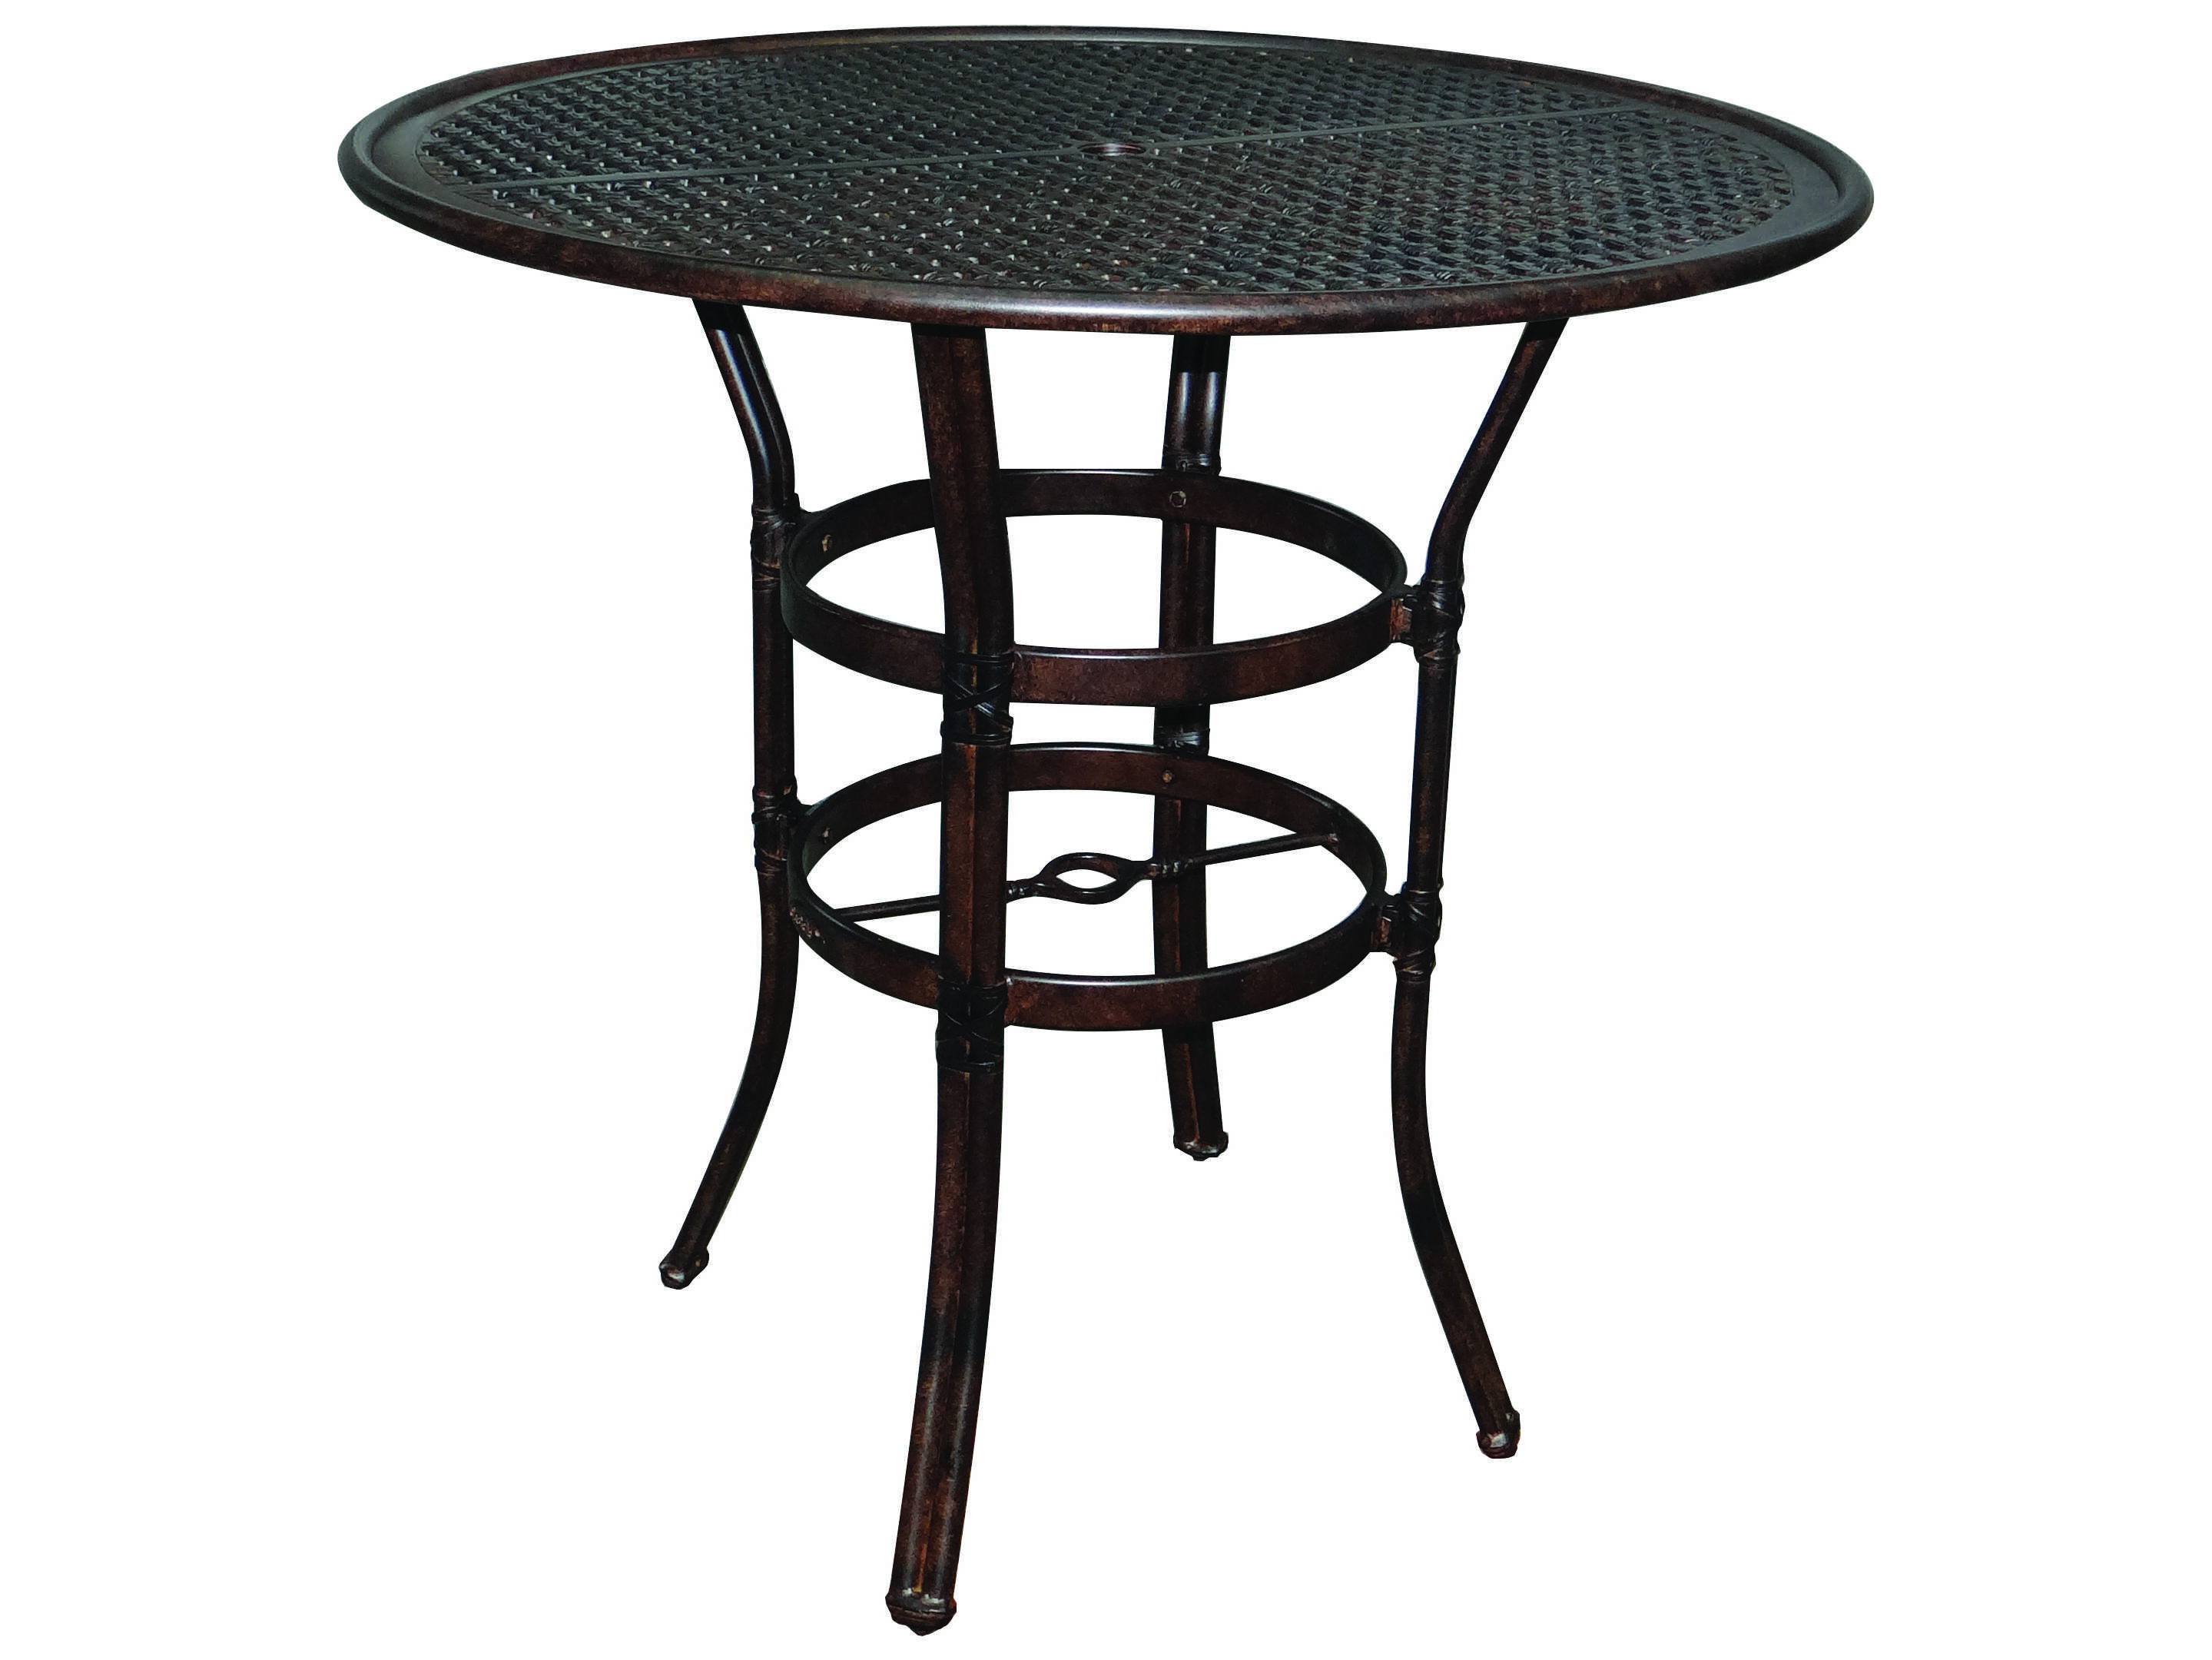 castelle resort cast aluminum 42 round bar height table ready to assemble lch42. Black Bedroom Furniture Sets. Home Design Ideas